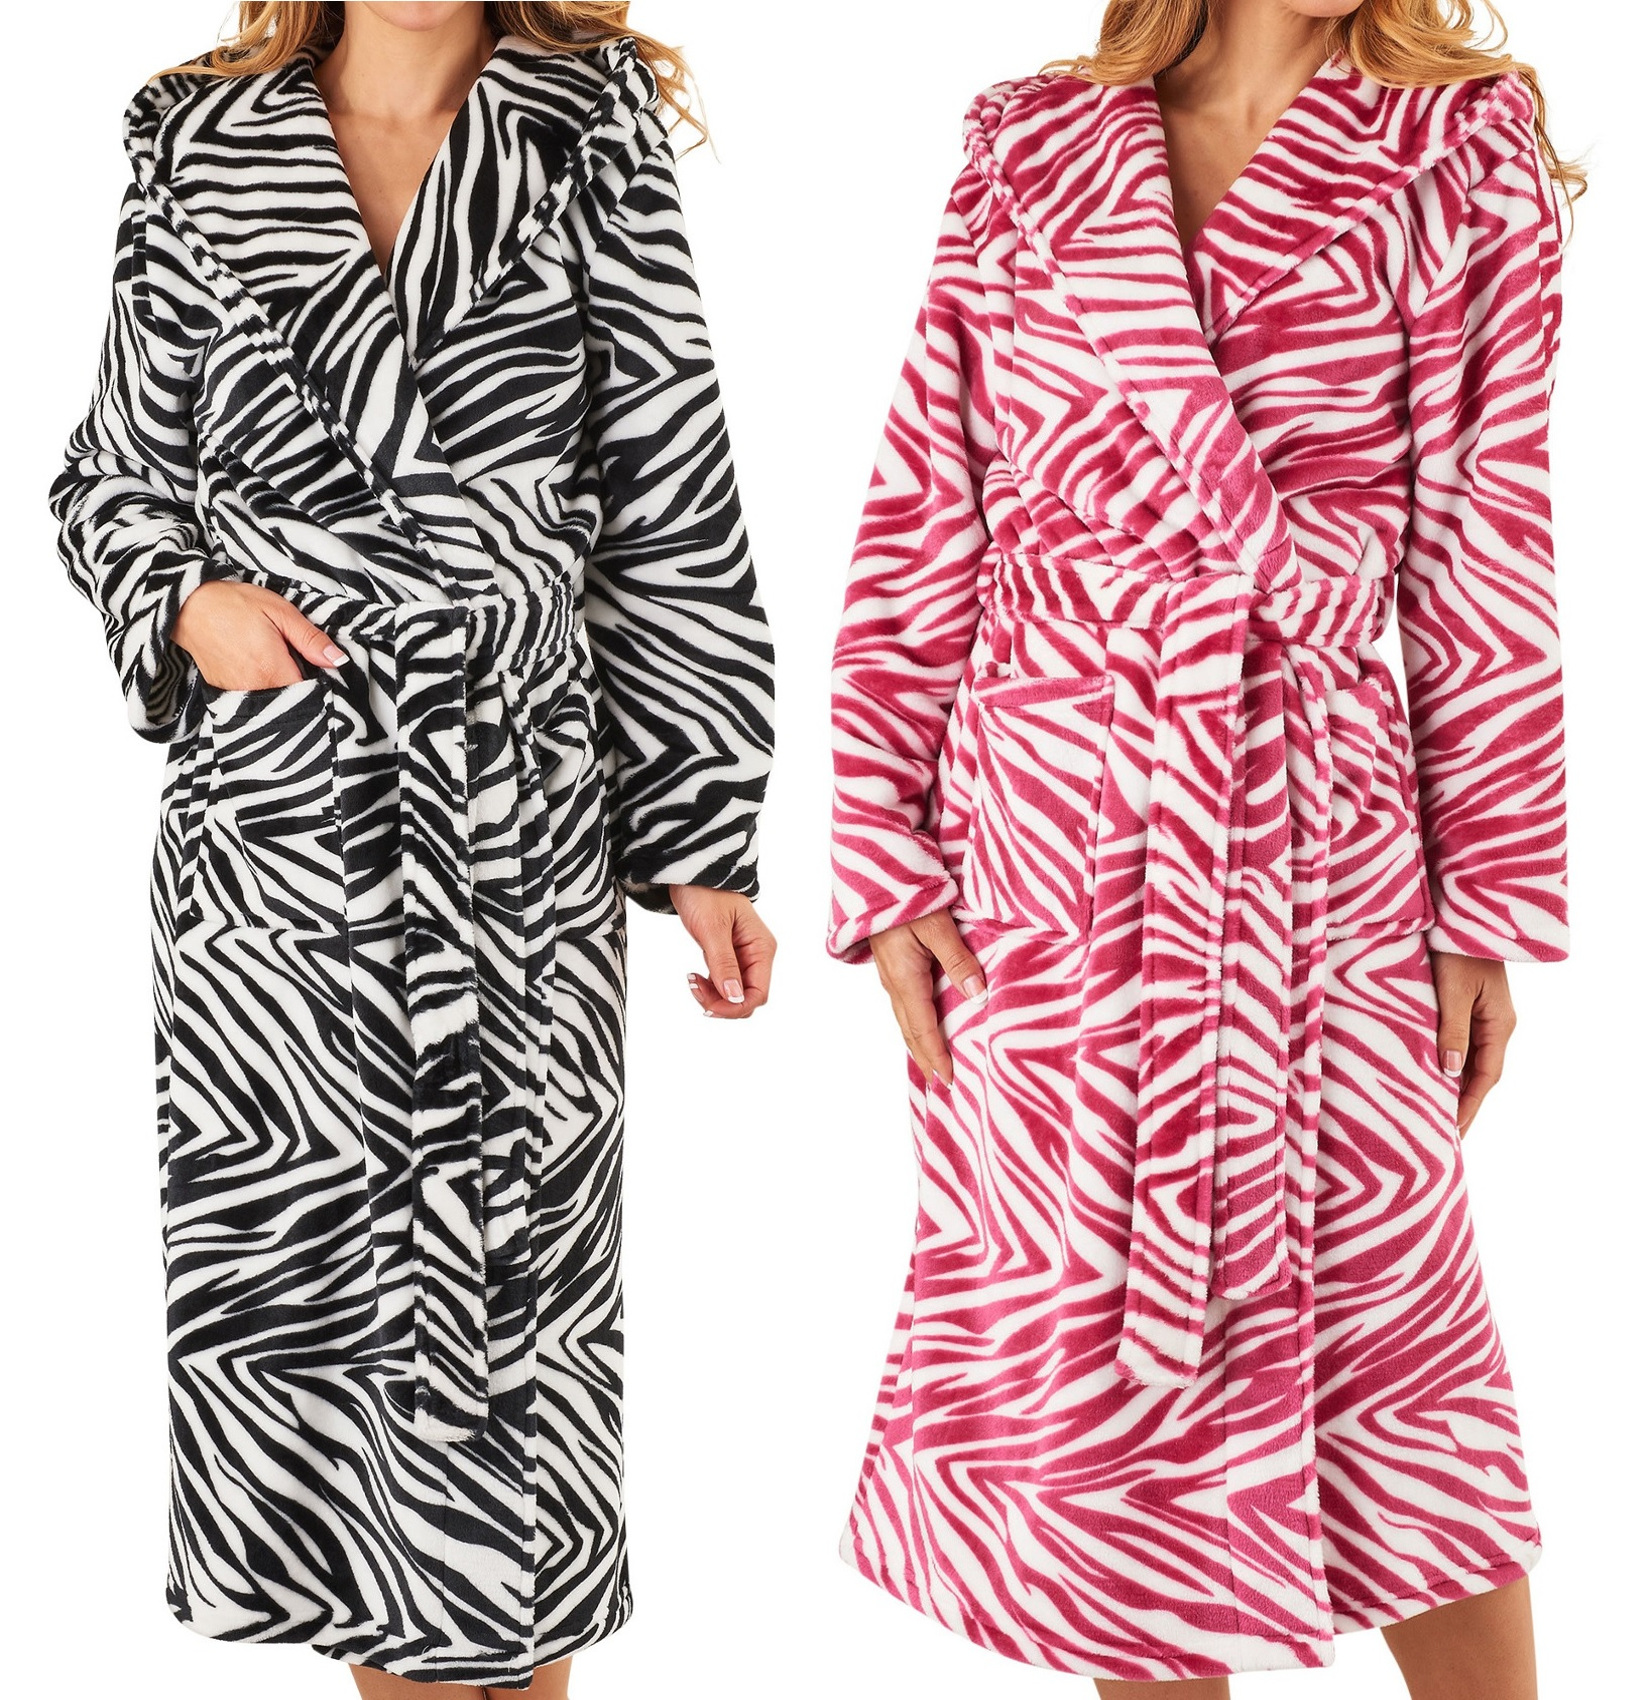 811e55aaf5 Details about Dressing Gown Ladies Hooded Zebra Slenderella Animal Print  Soft Fleecy Bathrobe